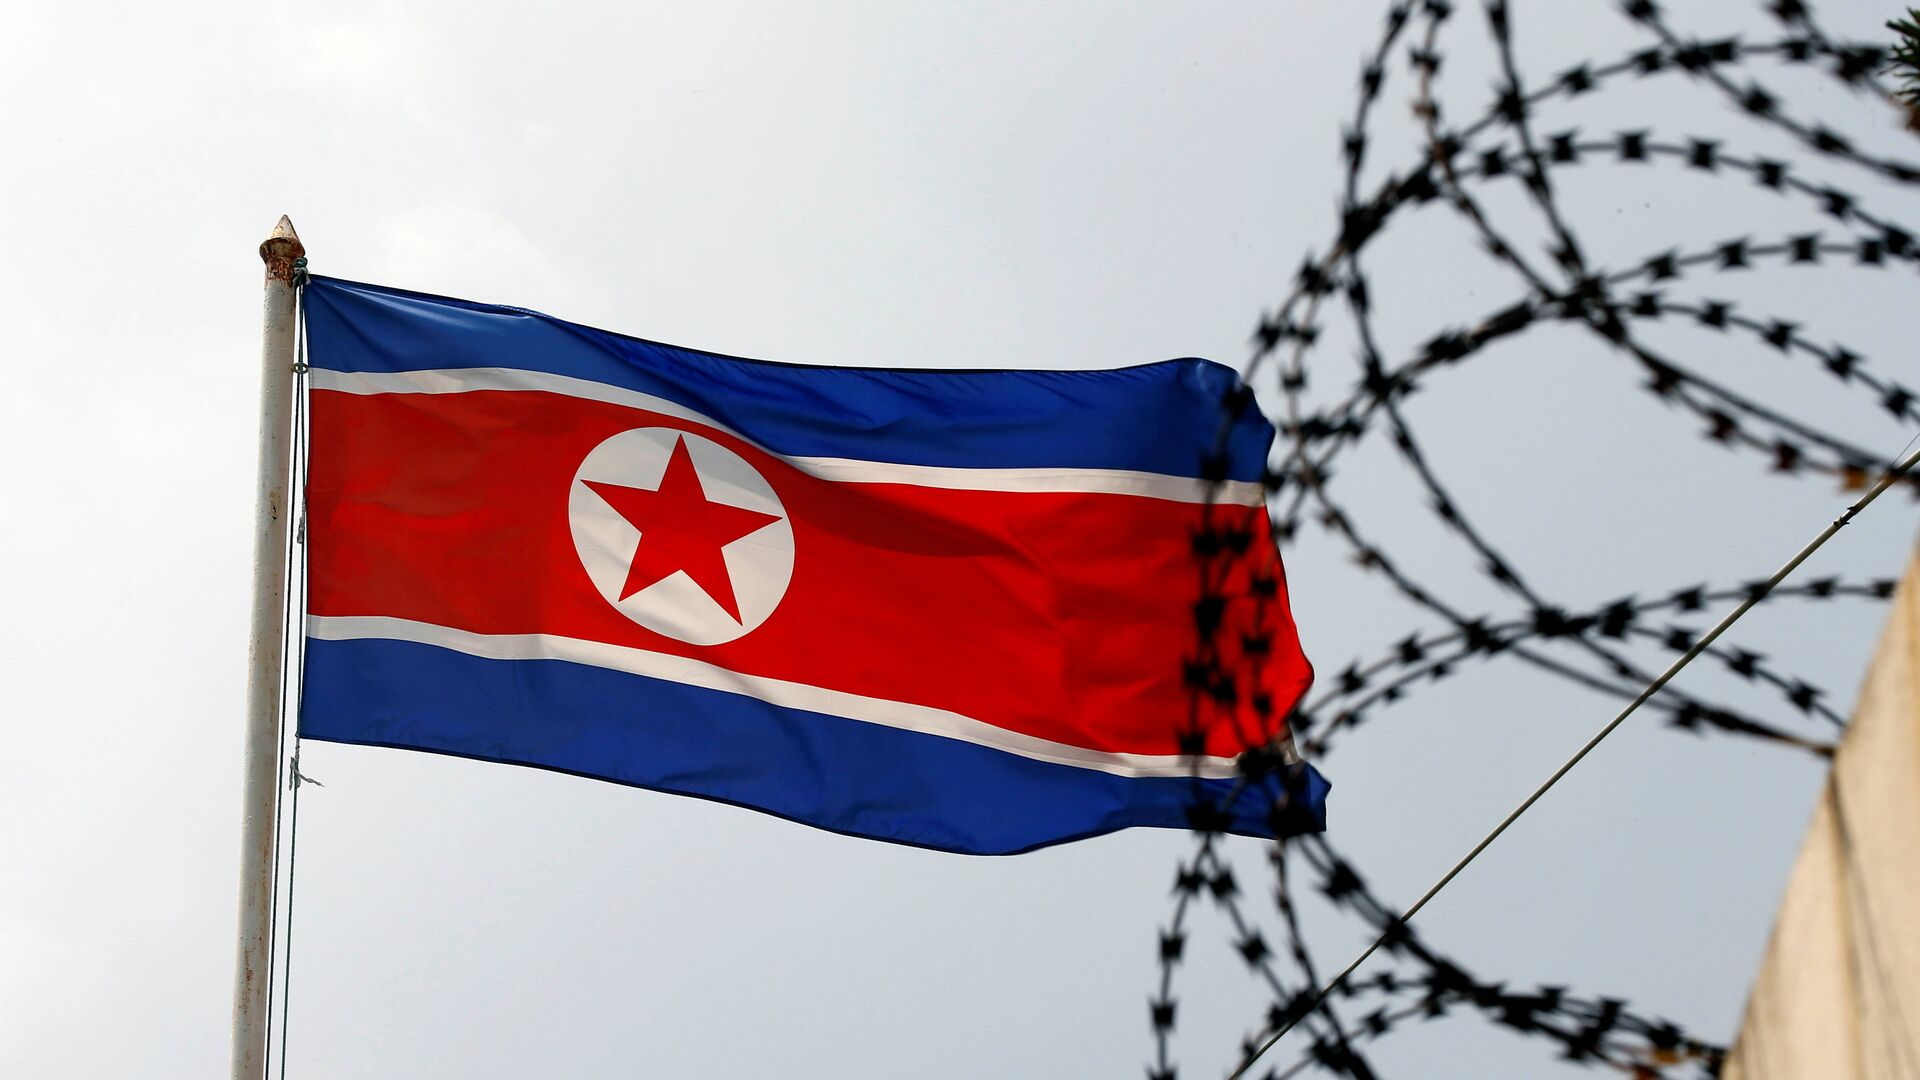 The North Korea flag flutters next to concertina wire at the North Korean embassy in Kuala Lumpur, Malaysia March 9, 2017 - Sputnik Mundo, 1920, 28.09.2021